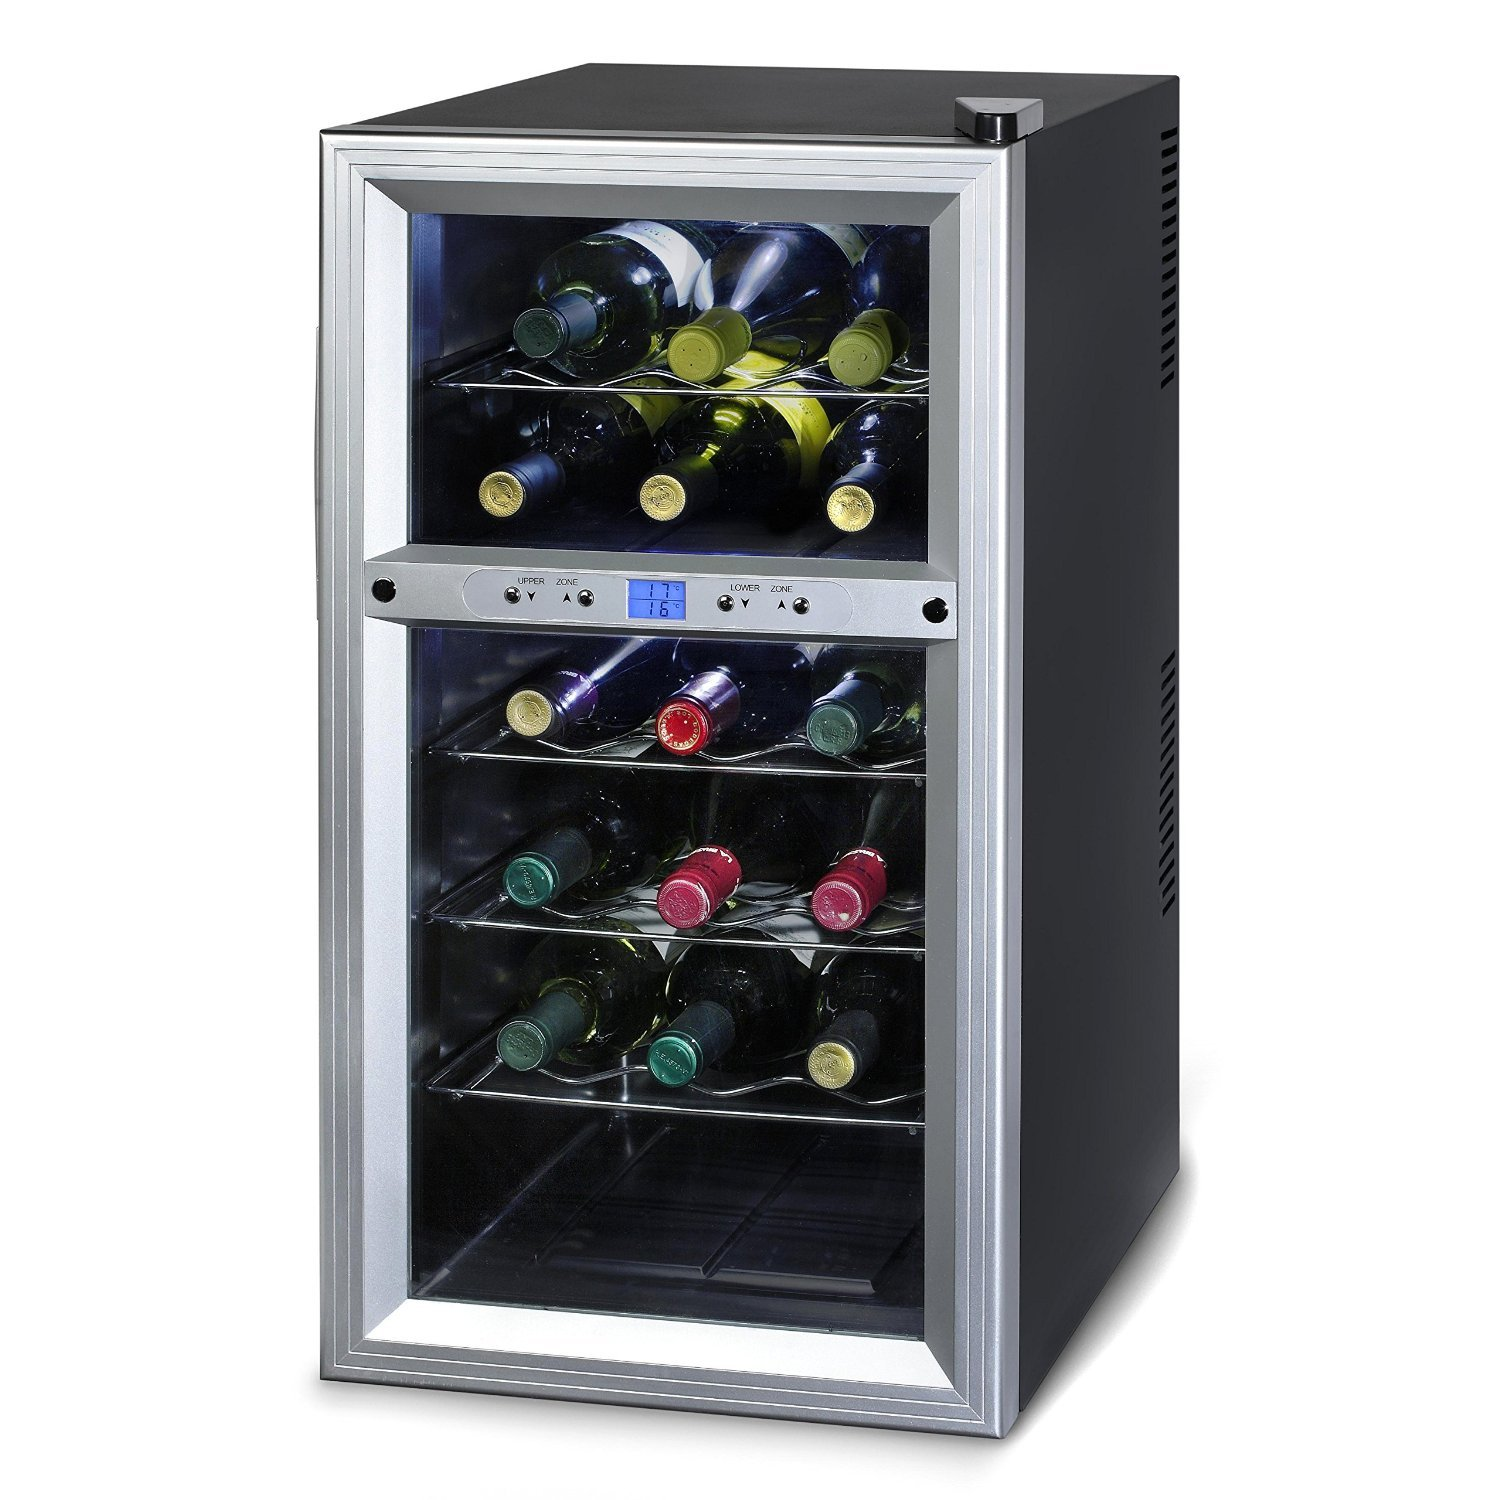 Kaloric Wine Cooler Wcl20629 Rack 18 Bottle Two Zone , Stainless Steel Including Floor Standing ,New Air ,Energy Efficientfeatures